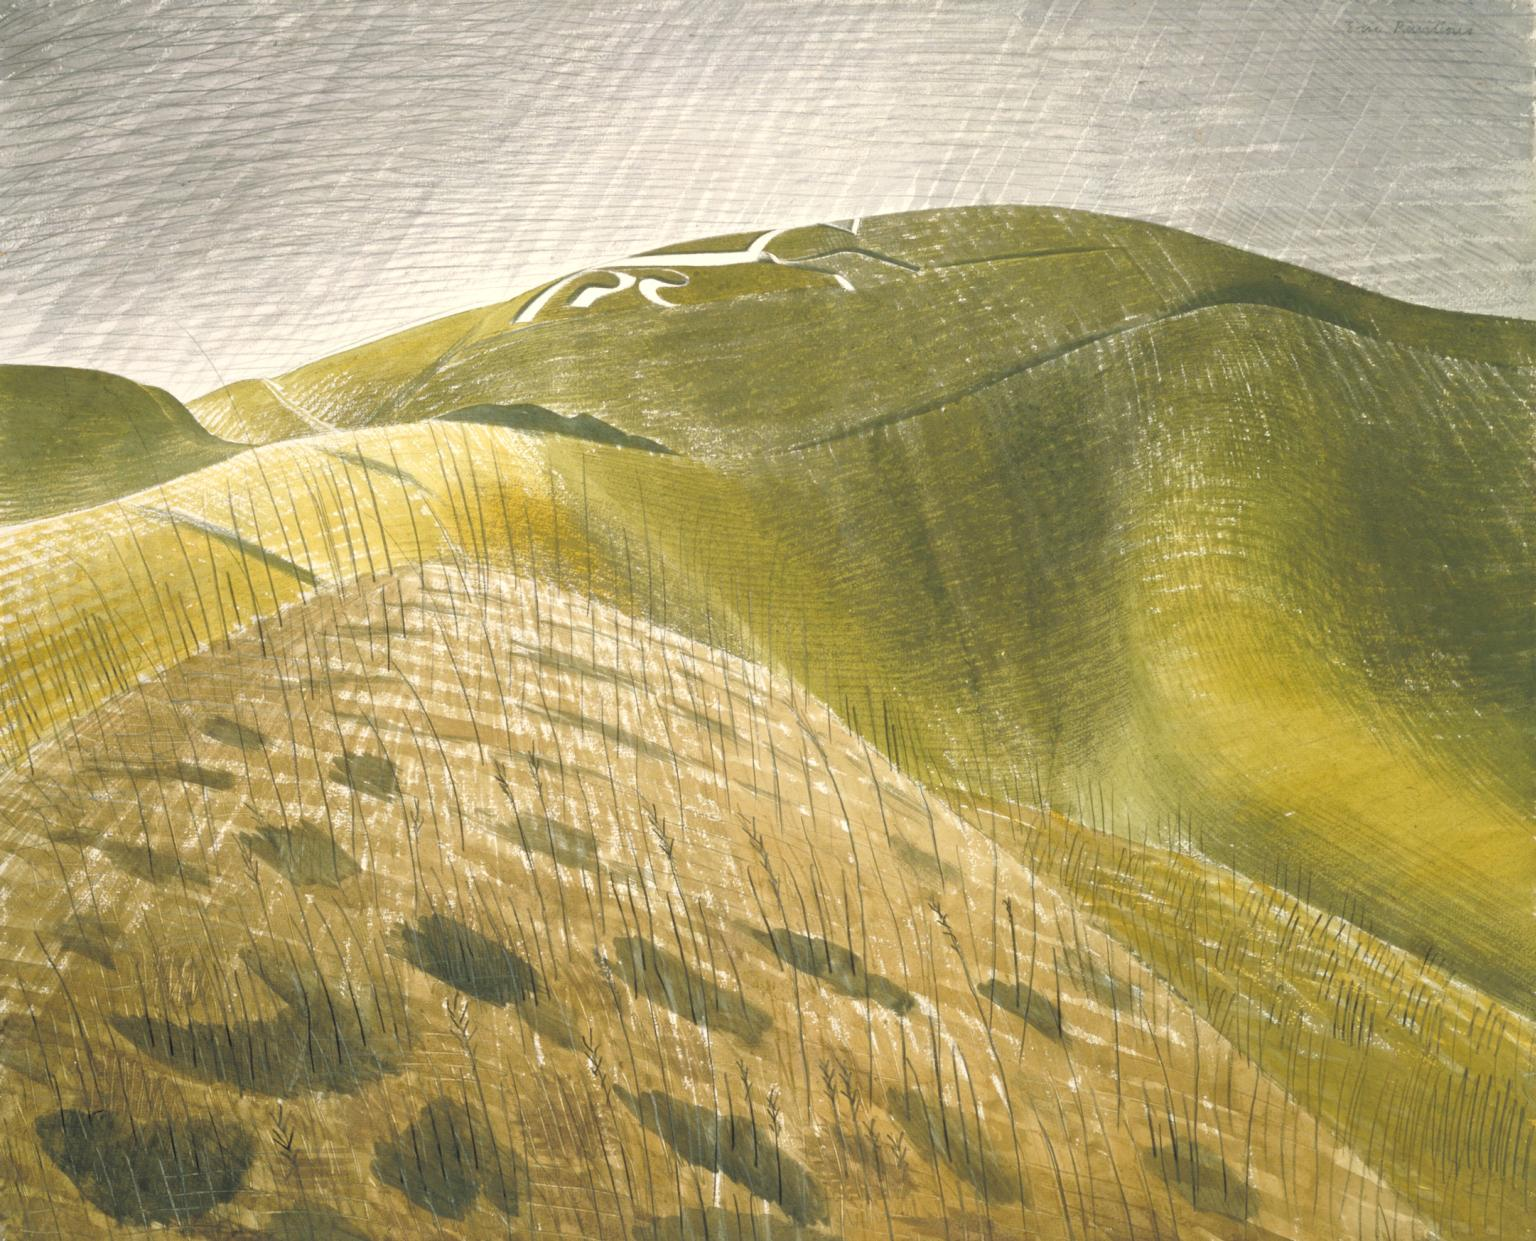 Uffington White Horse by Ravilious